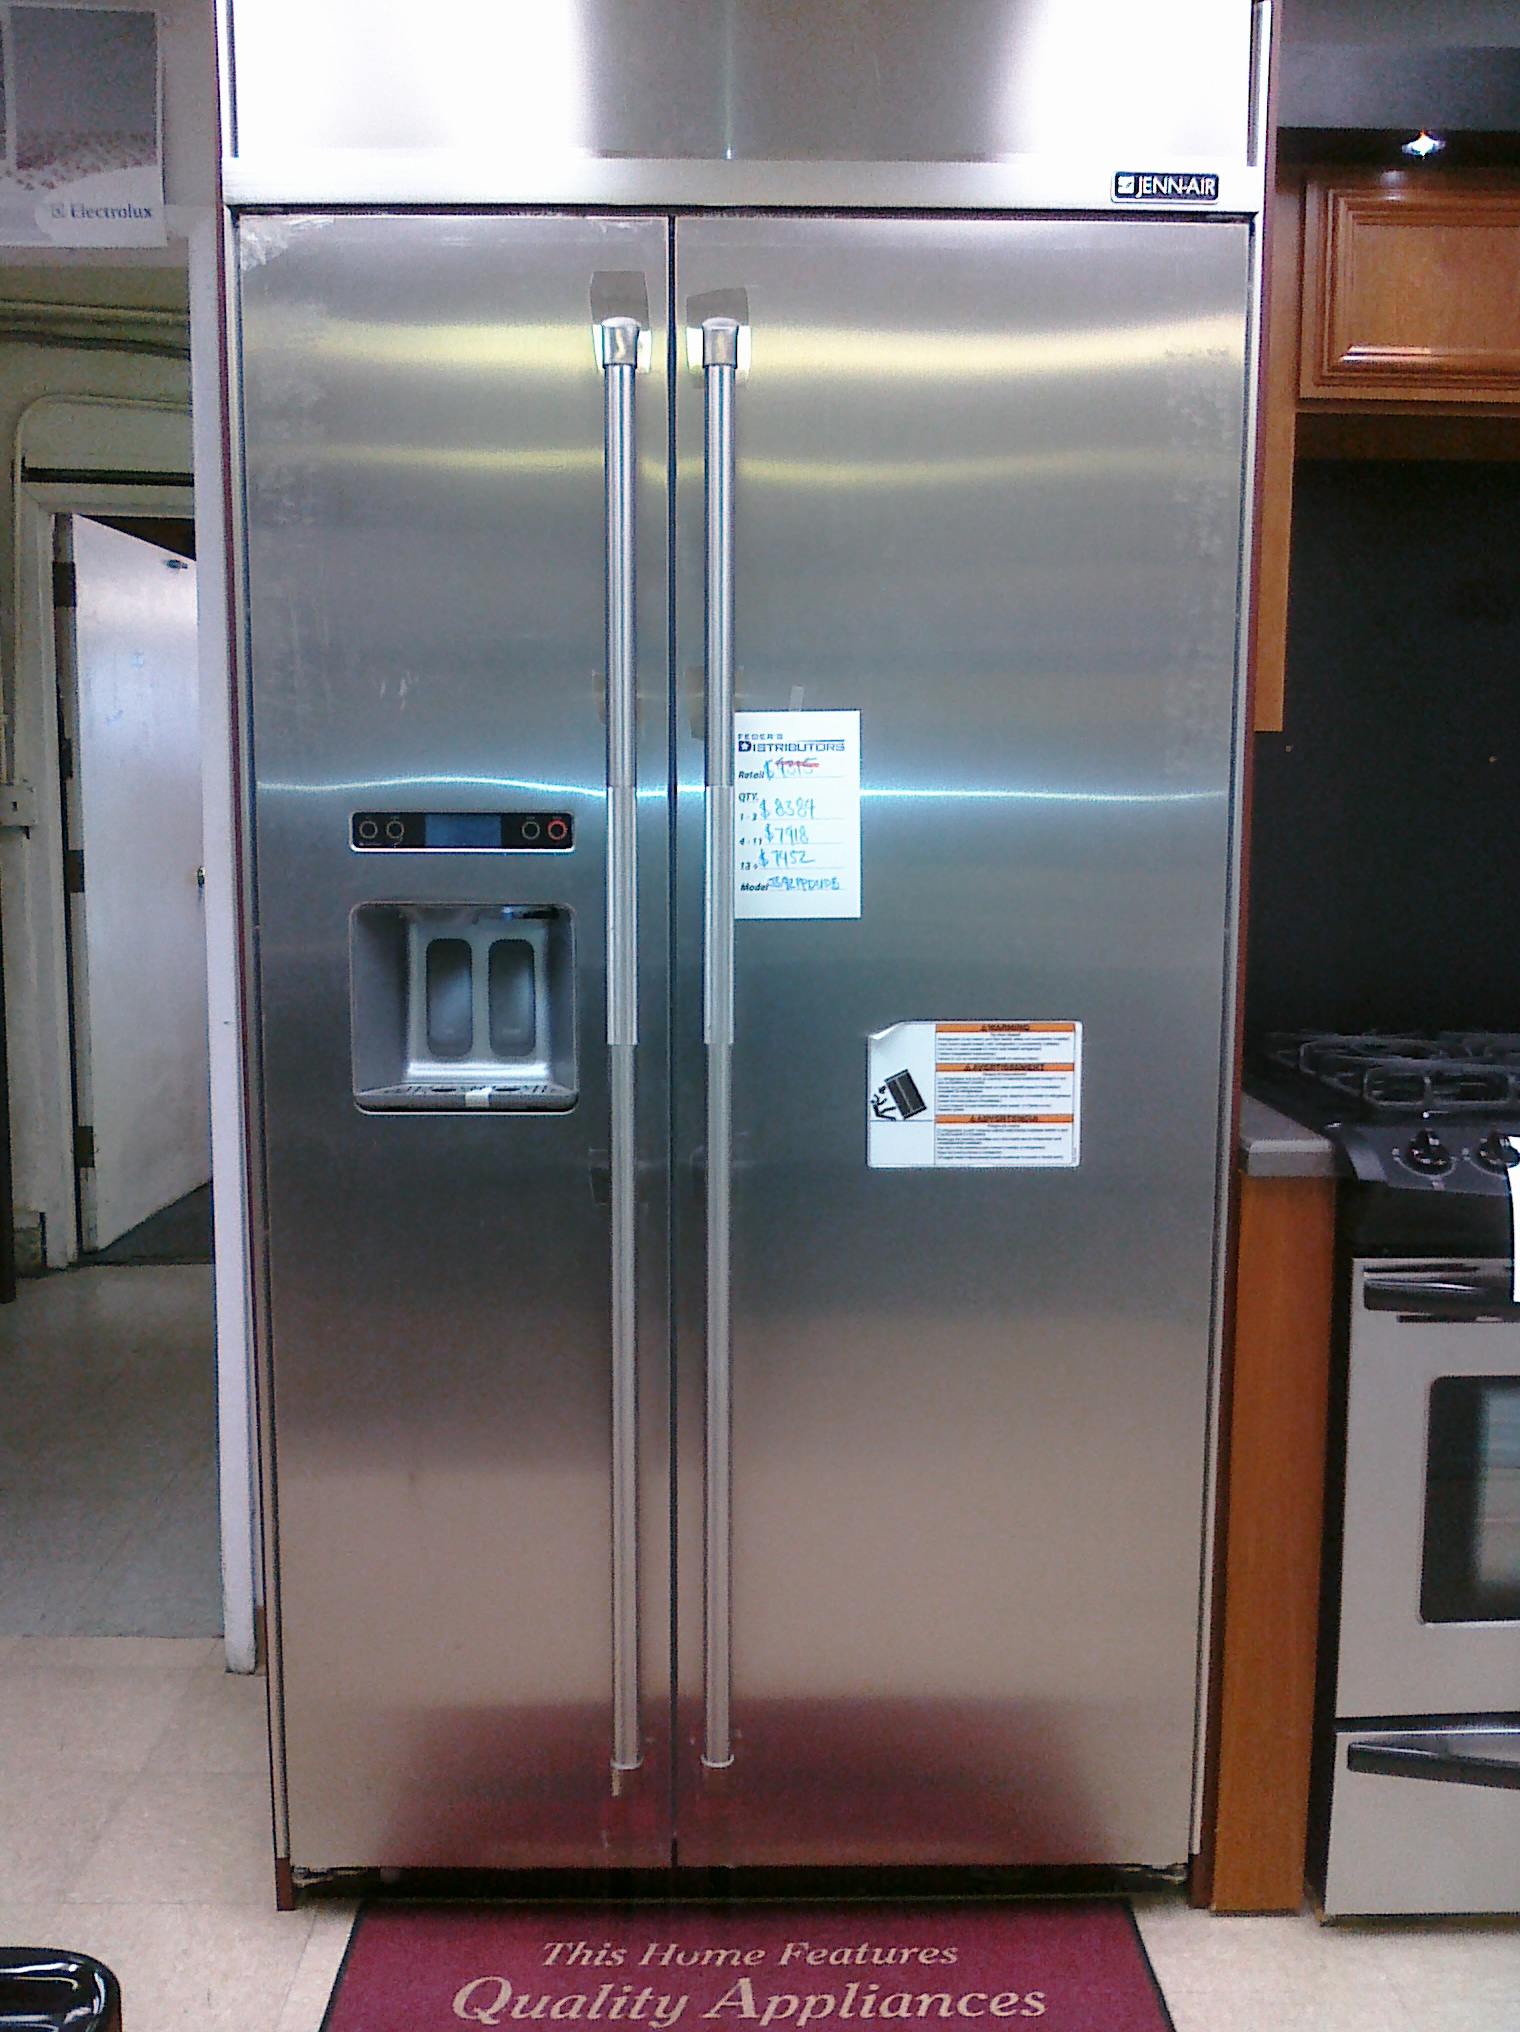 (10) Jenn Air JS42PPDUDB Built-In Side-By-Side Refrigerator, Stainless Steel